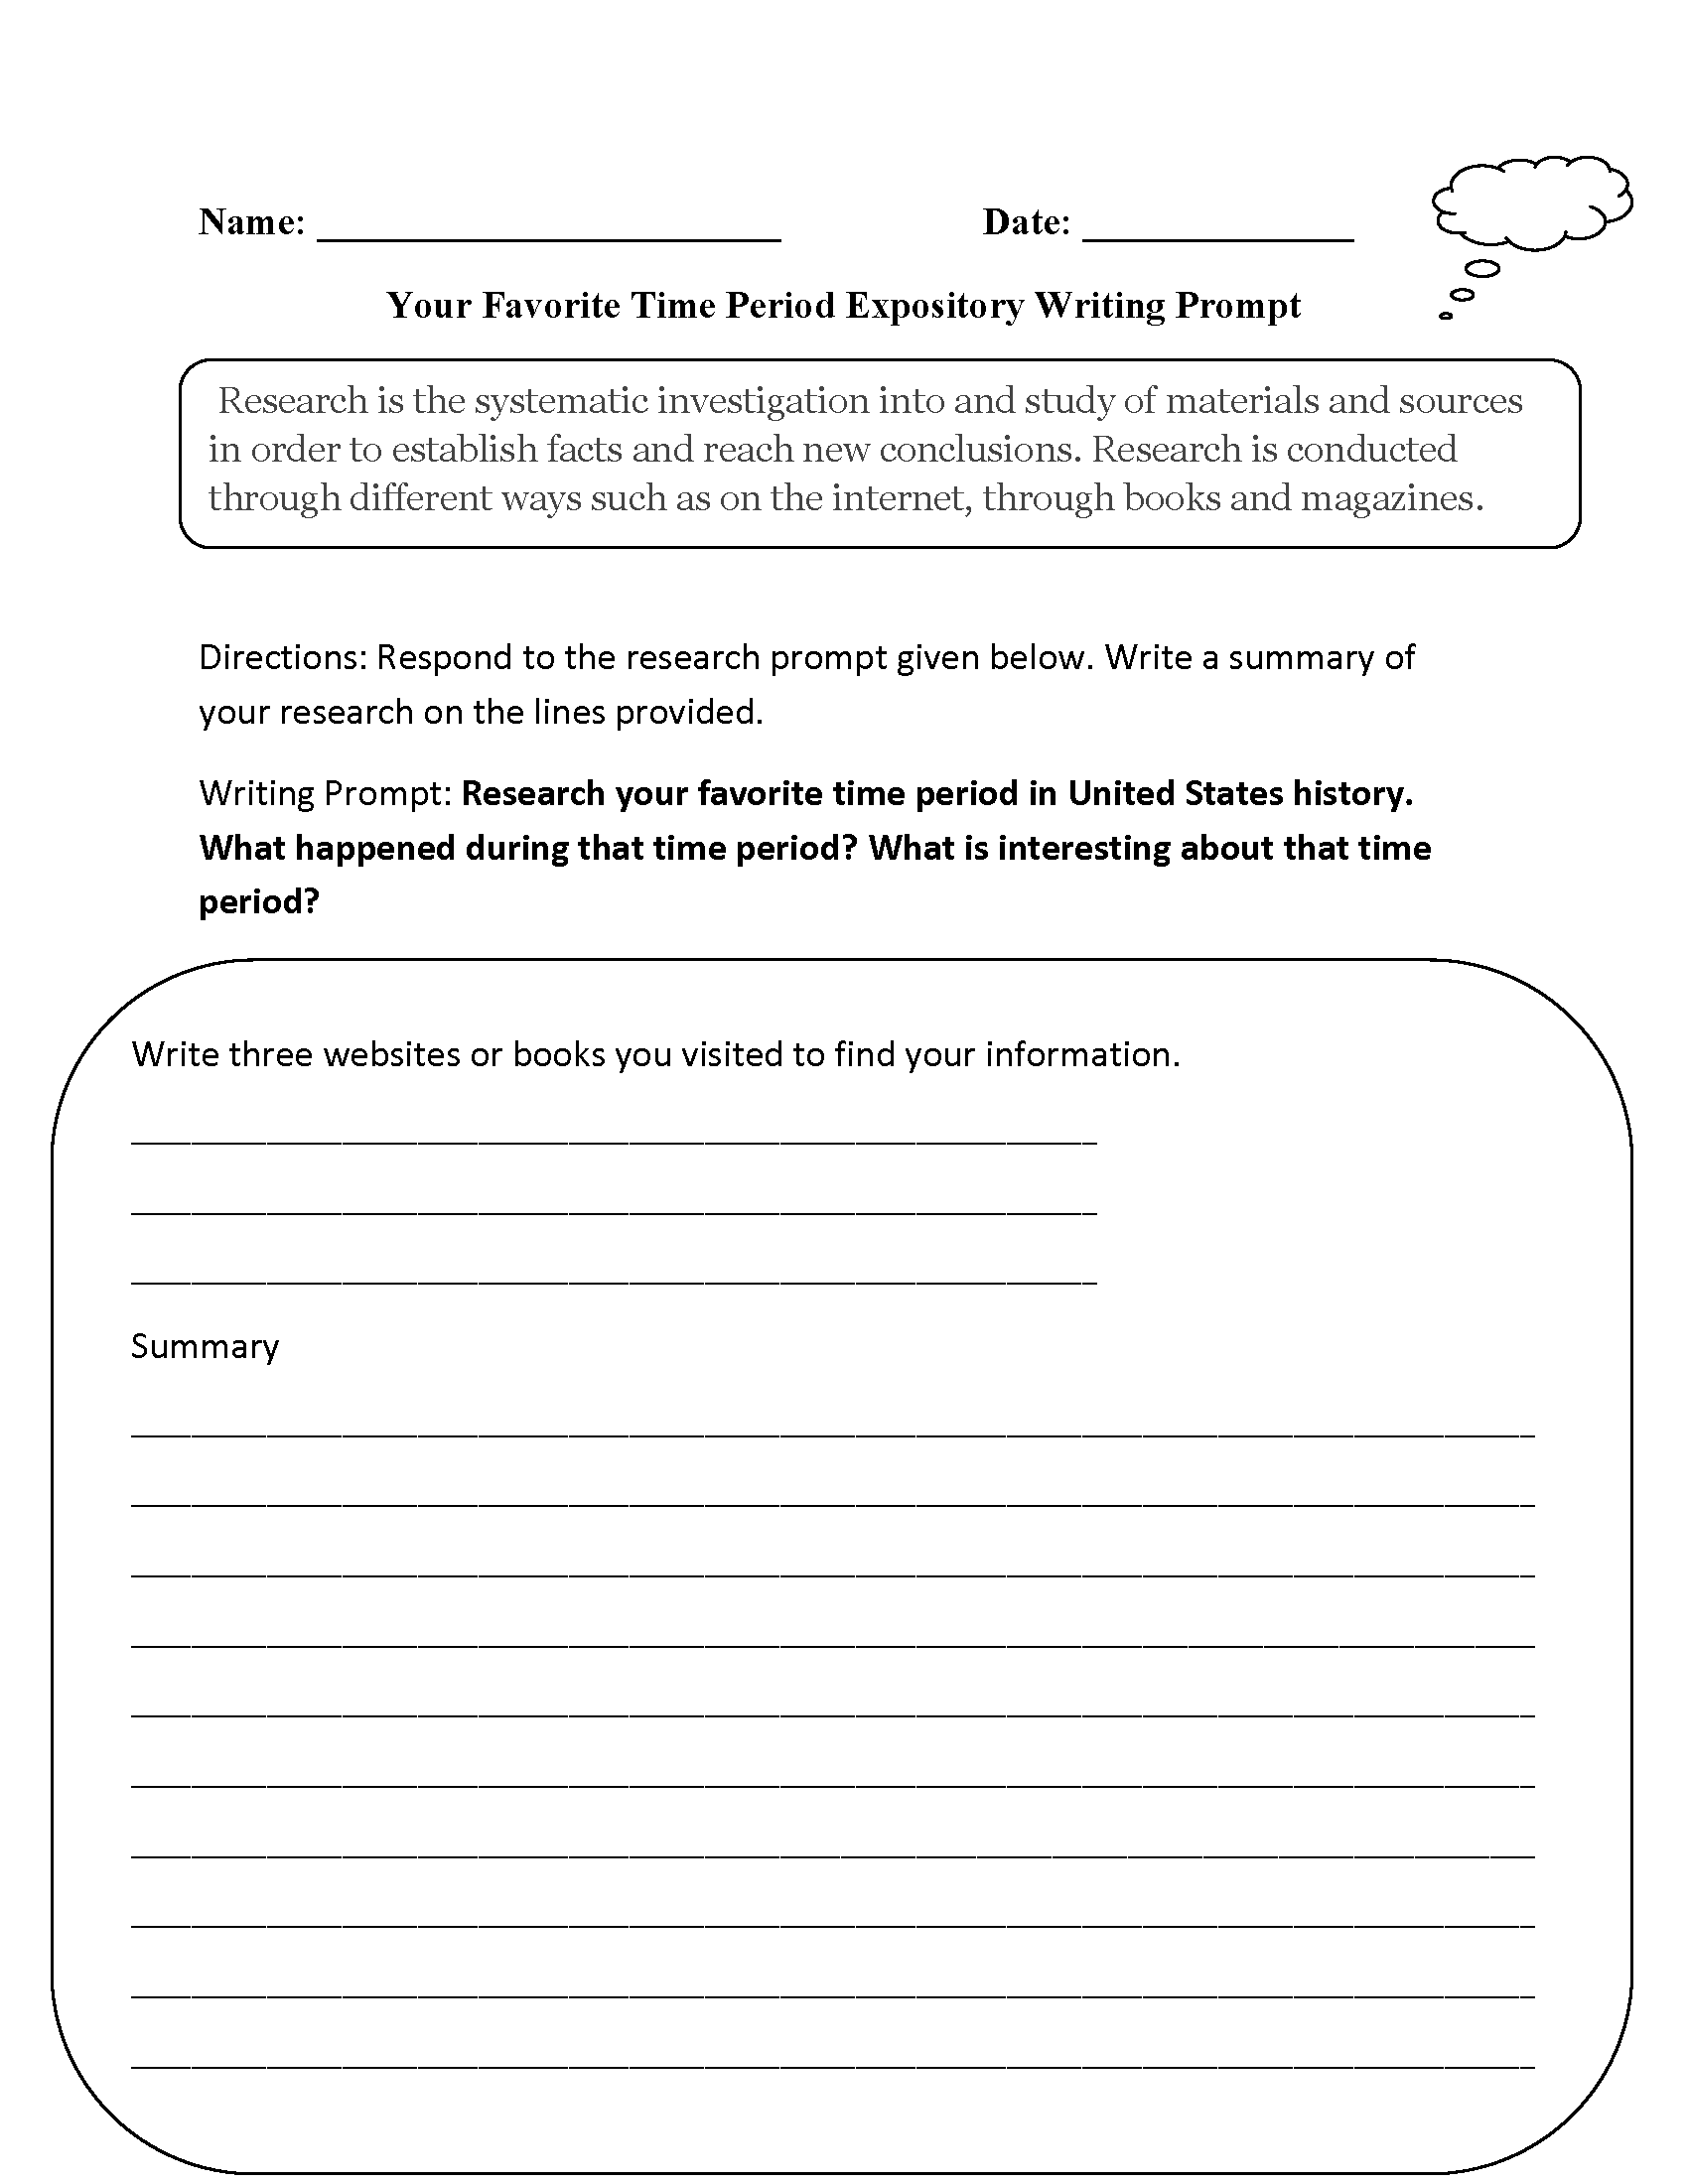 expository essay contest prompts Narrative writing prompts  narrative essay prompts  esl writing prompts creative writing prompts expository writing prompts.